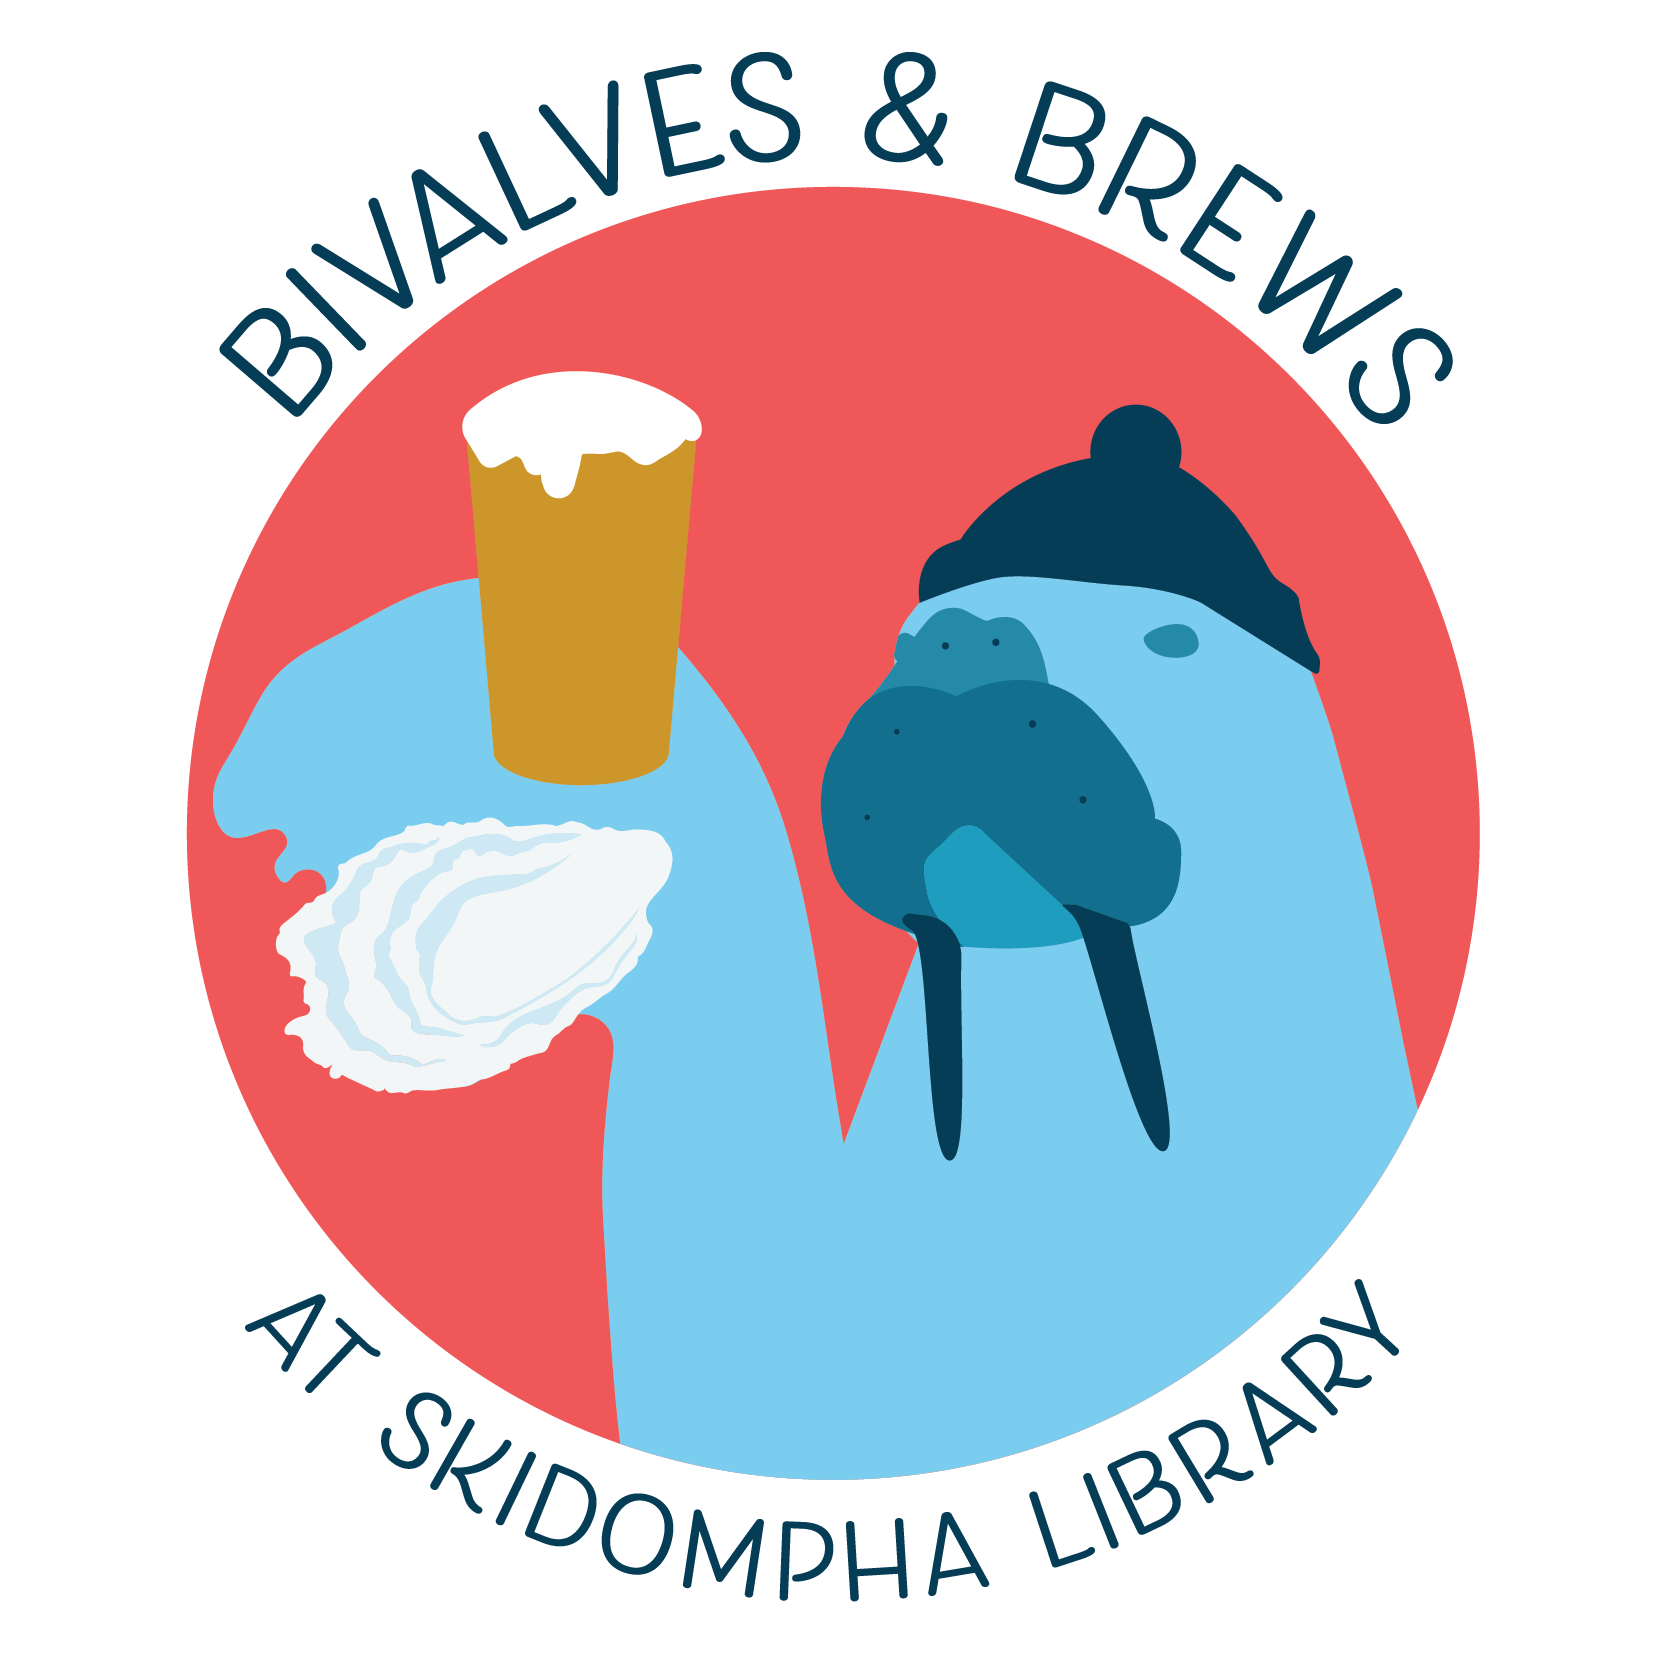 Oyster clipart bivalve. Skidompha bivalves and brews